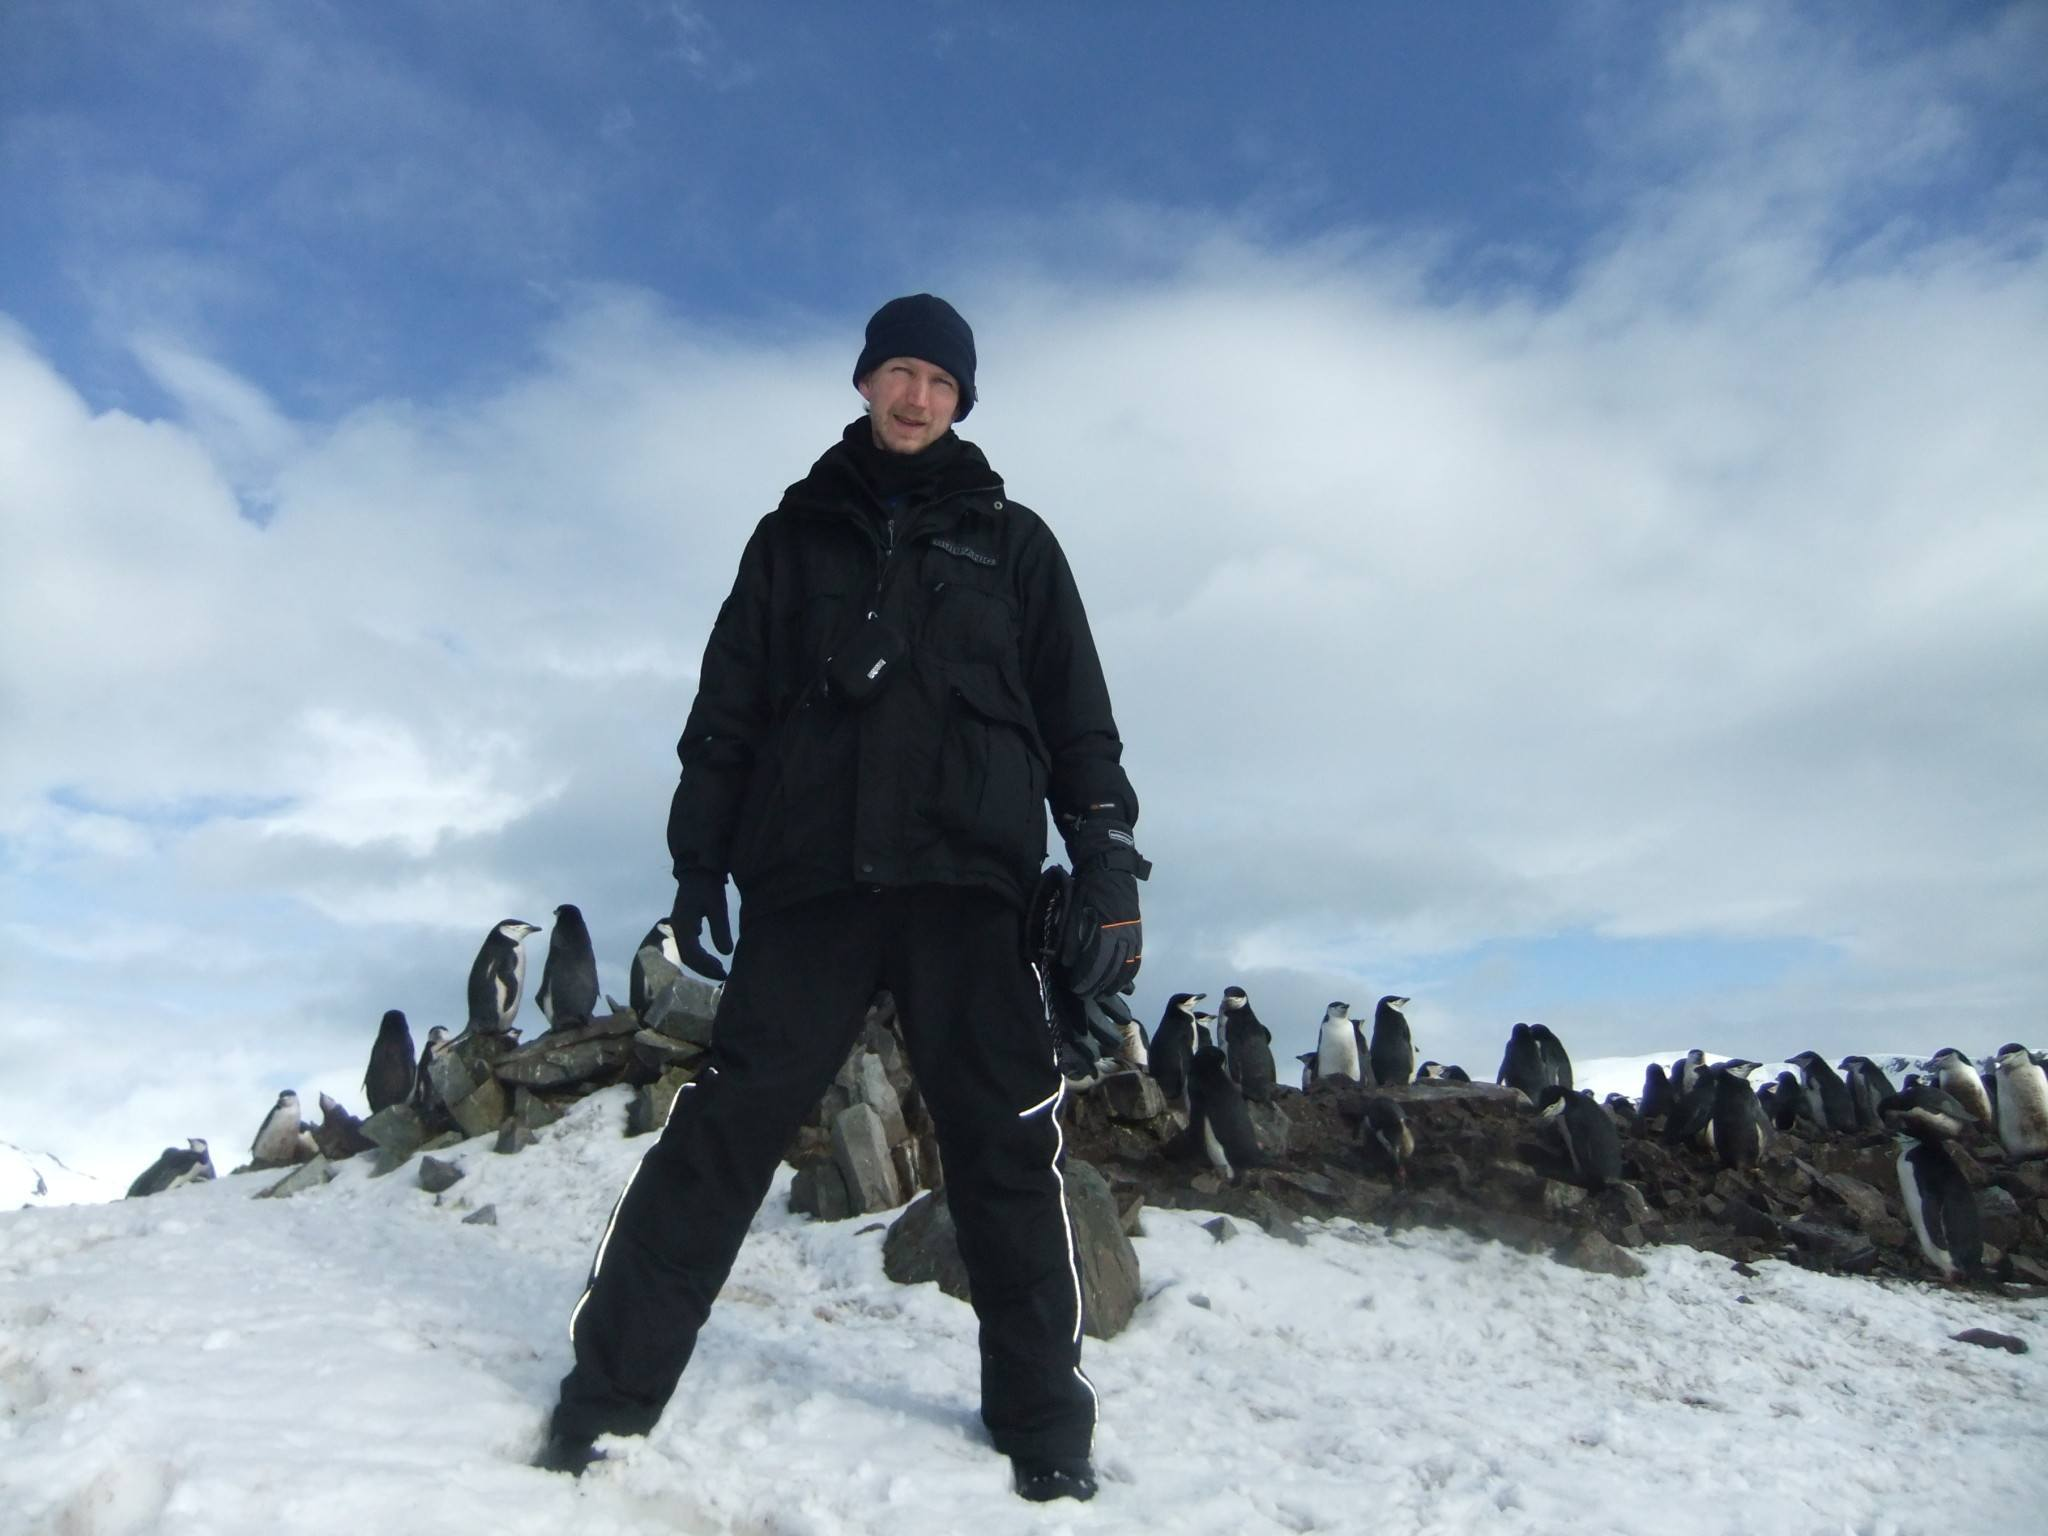 5 Cool Things To Do When Backpacking in Antarctica